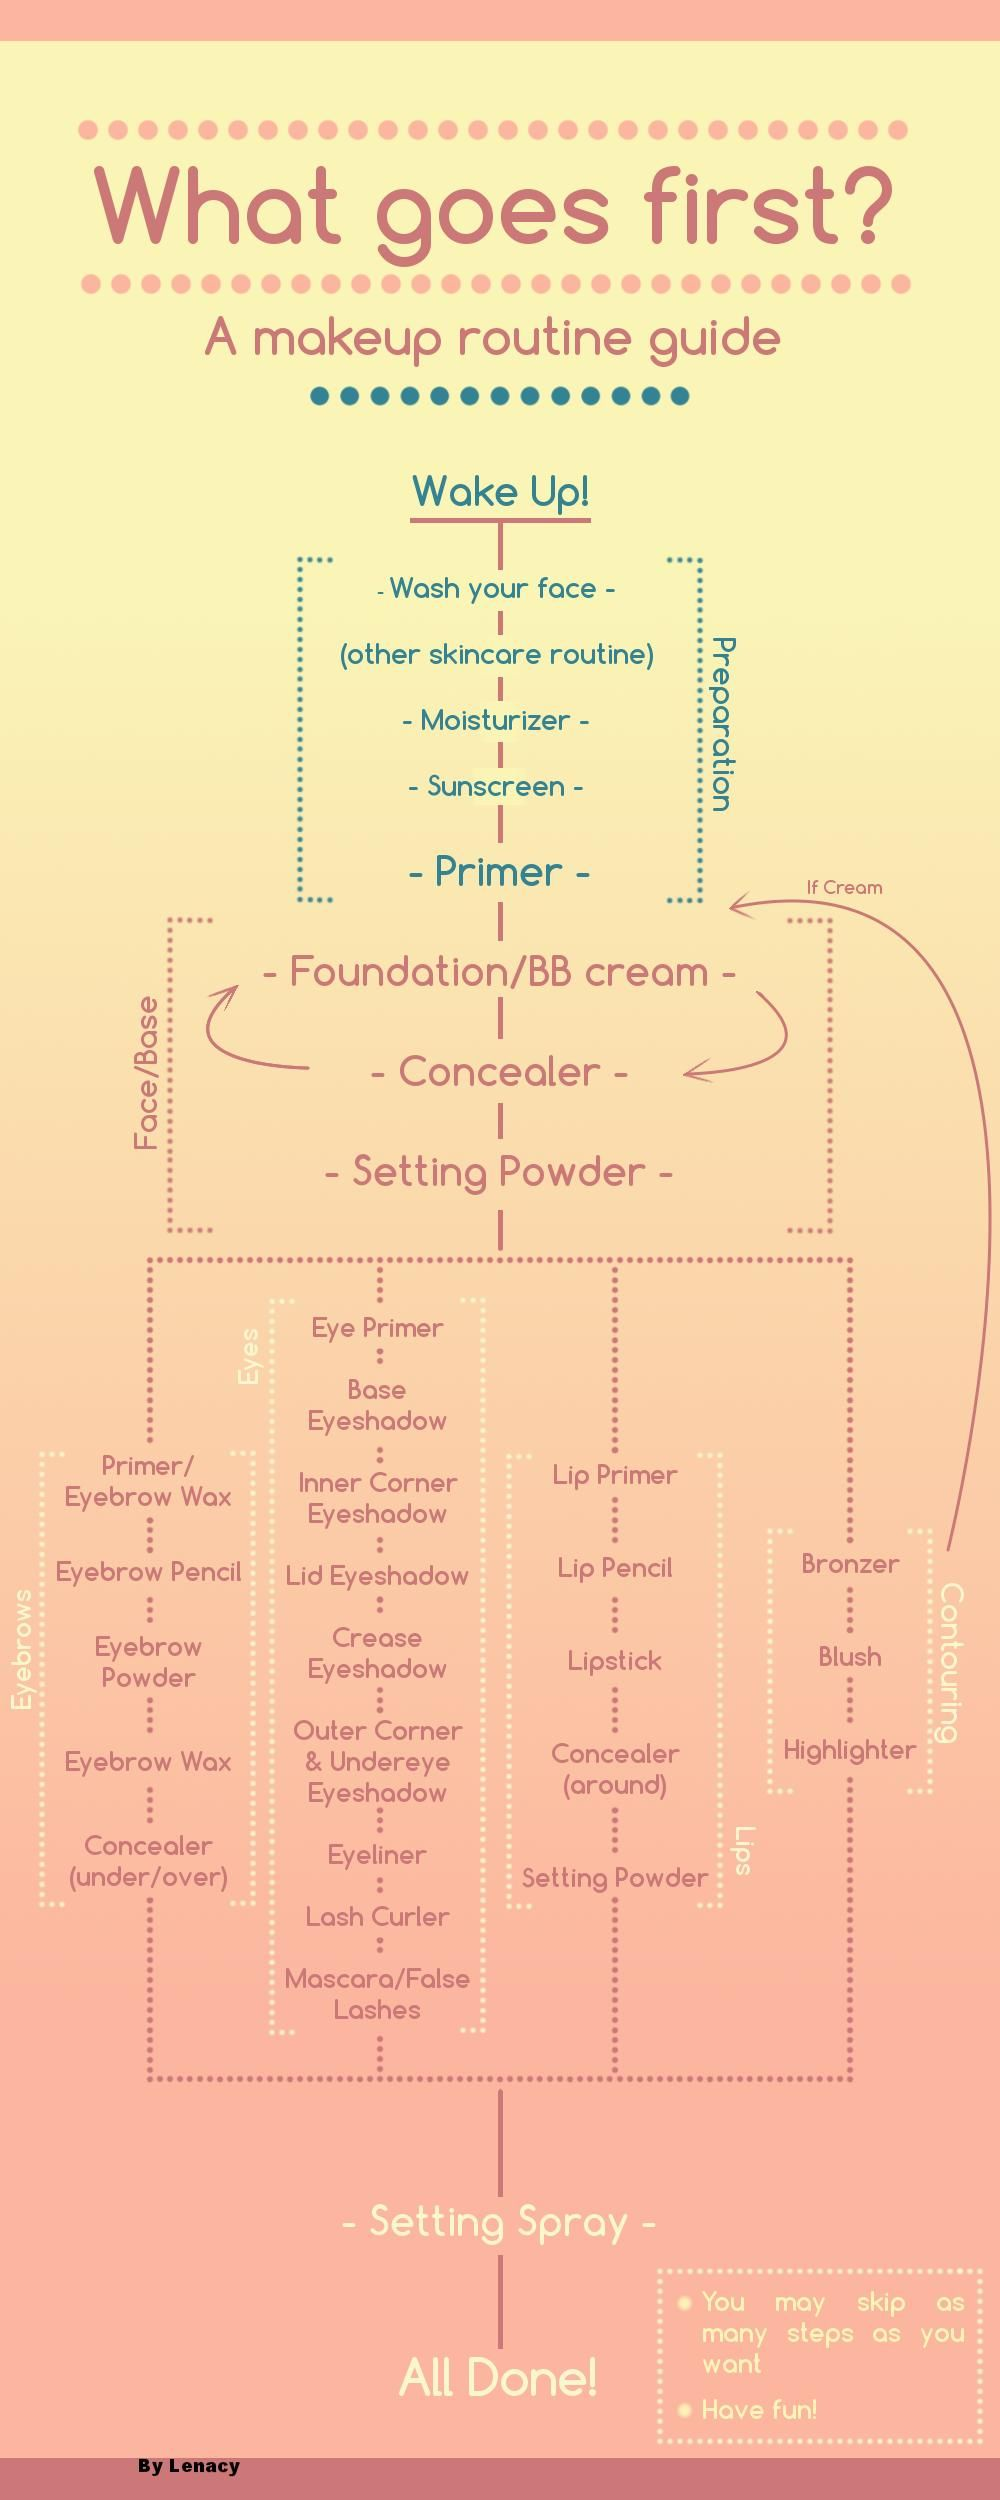 small resolution of incredibly useful makeup order flowchart by u lenacy on reddit for those who aren t sure what goes first